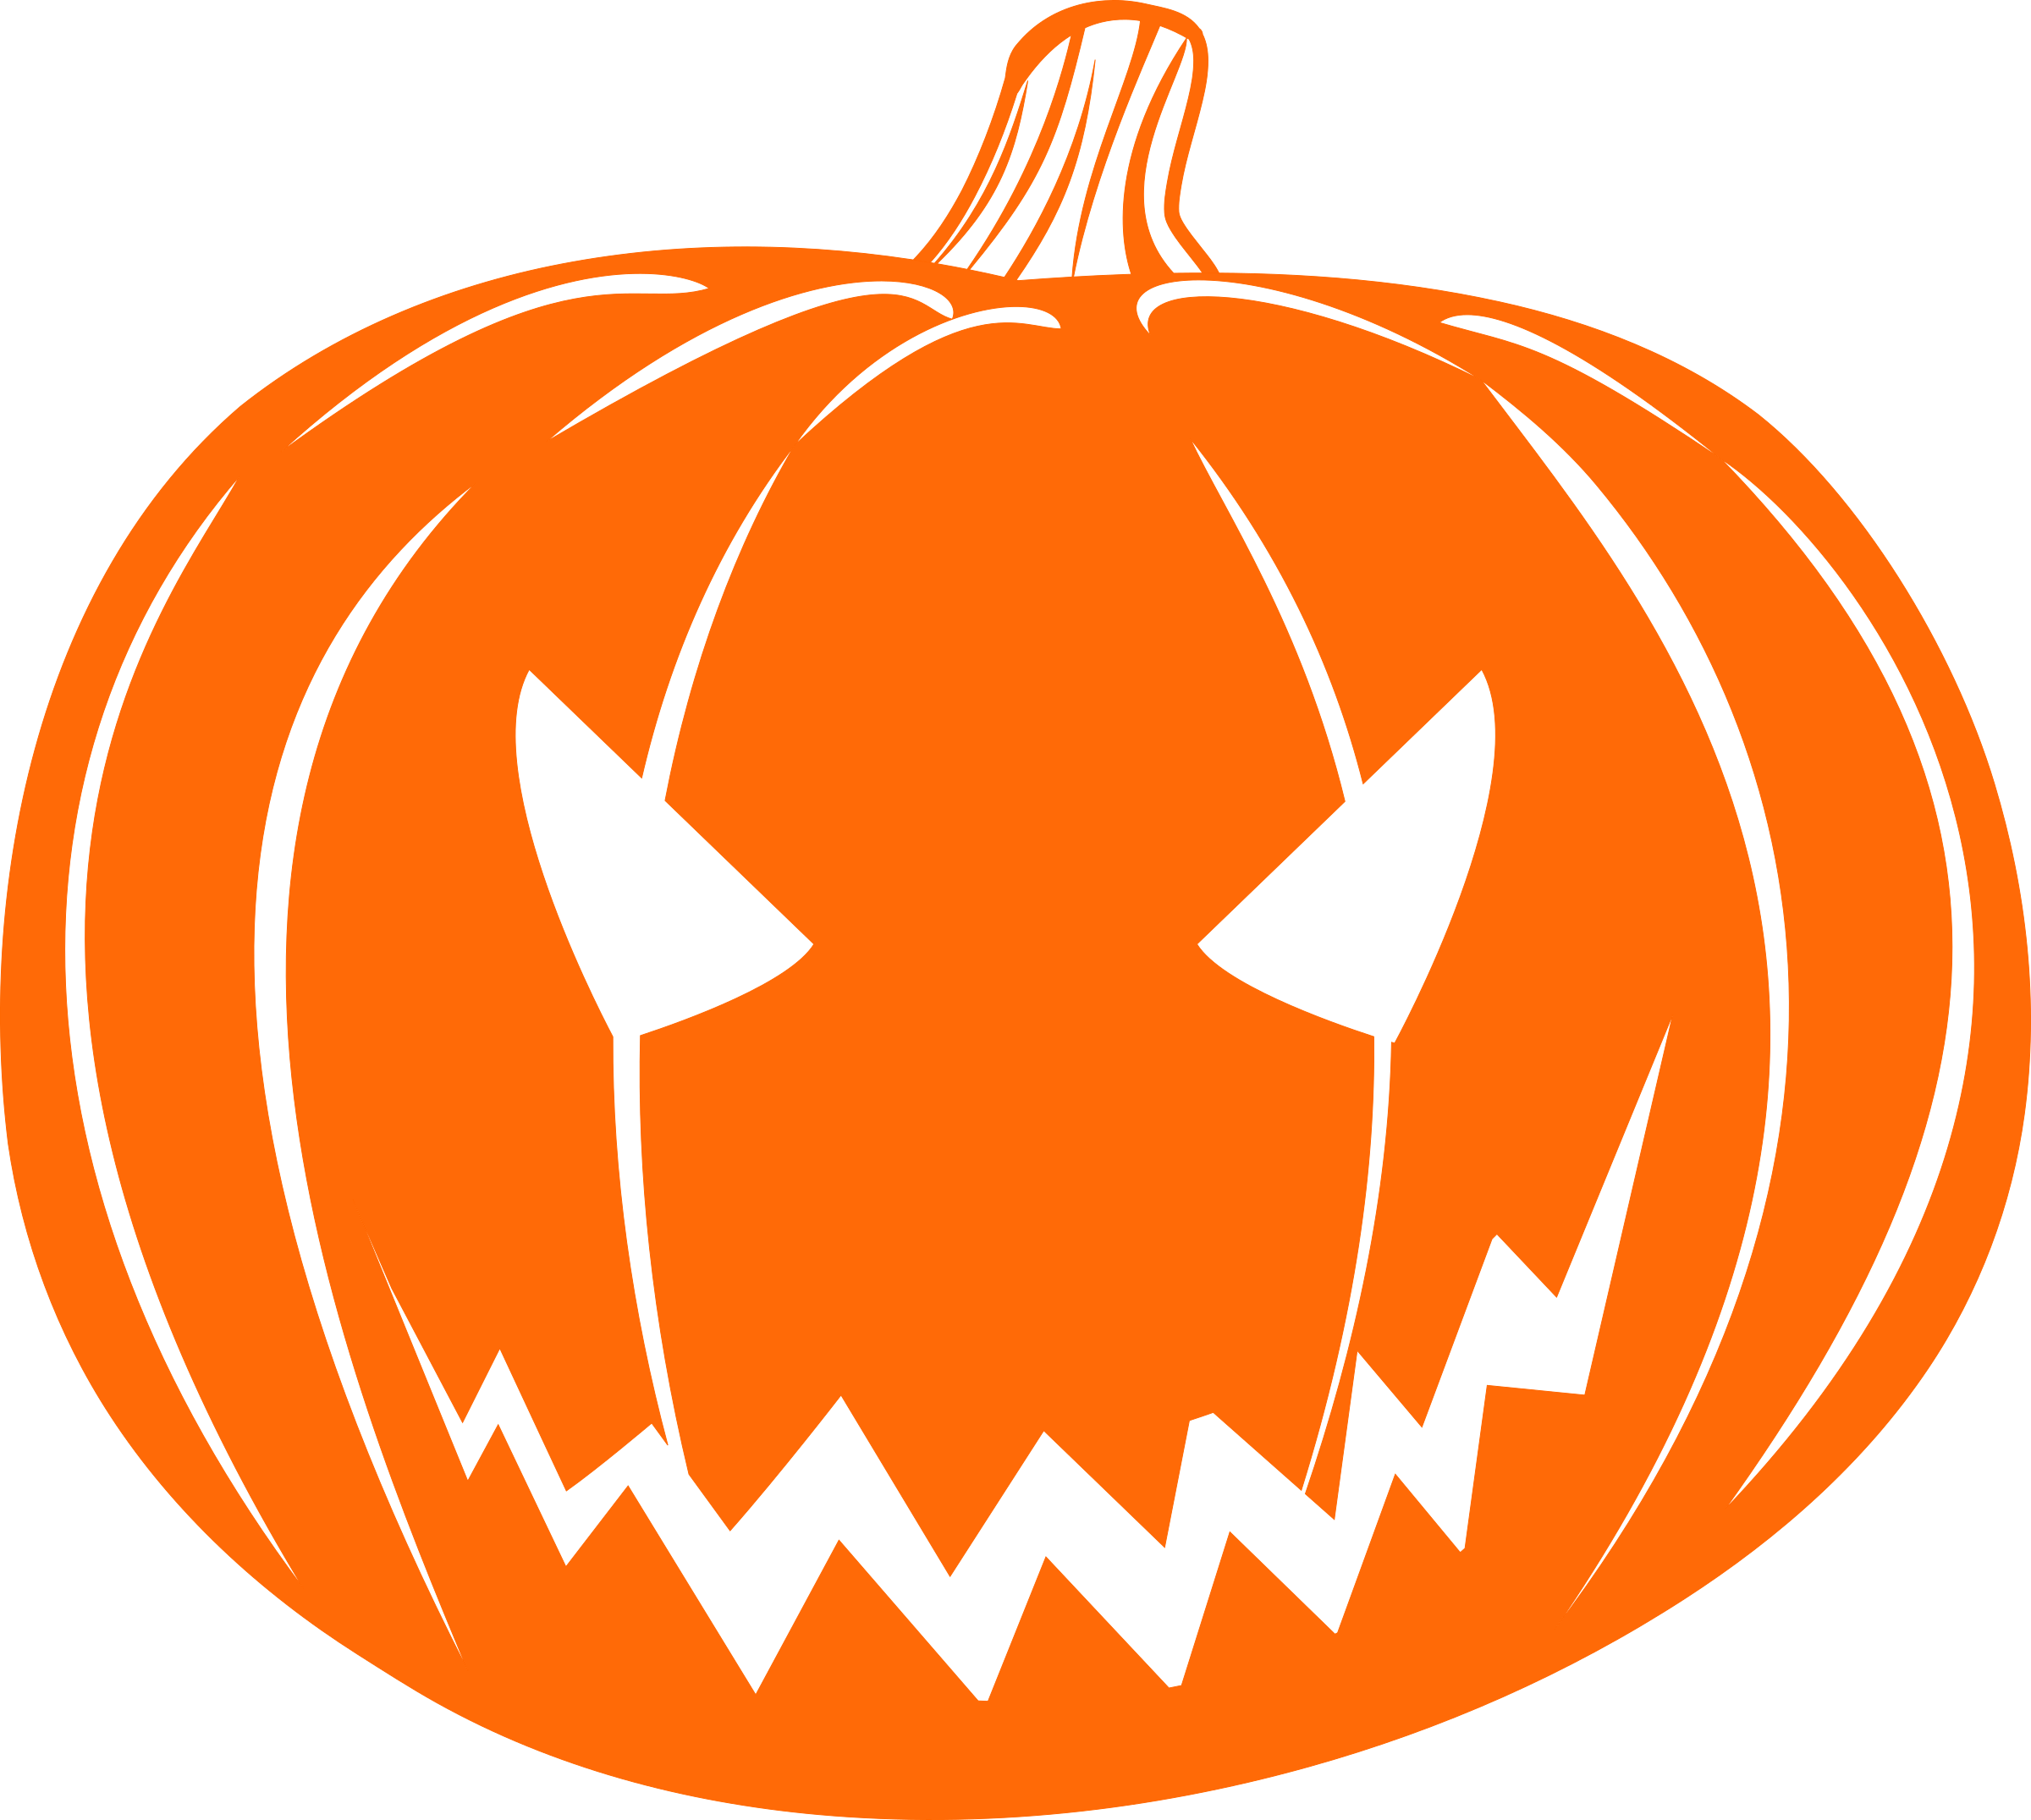 Scary halloween pumpkin clipart clipart transparent stock Clipart - Scary Jack-o-lantern clipart transparent stock